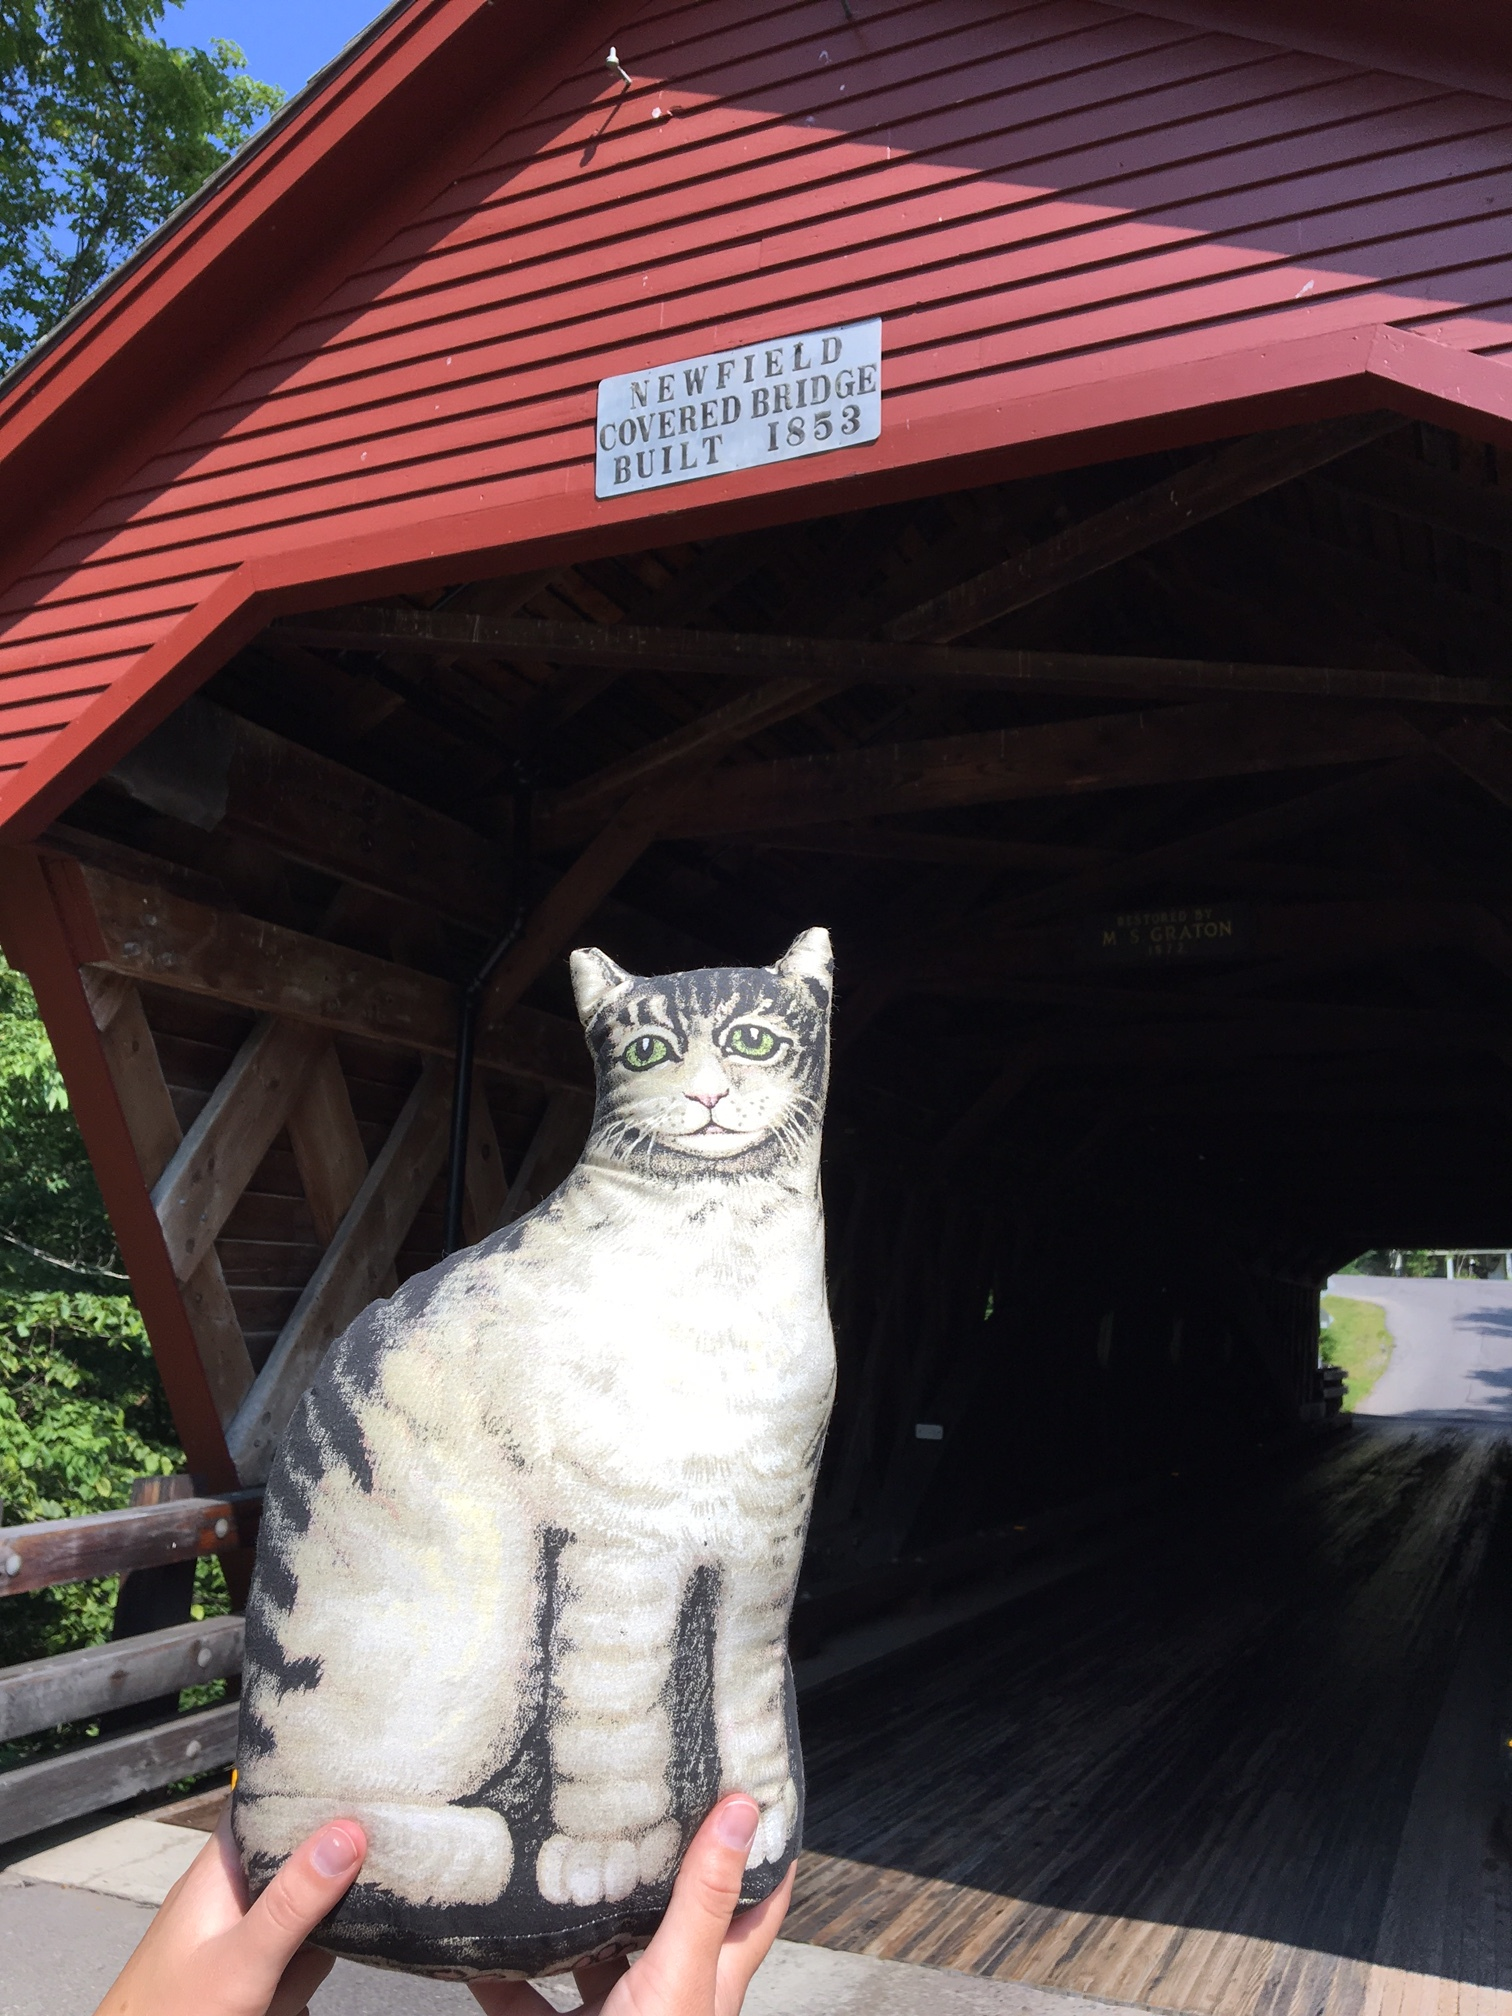 Ithaca-kitty-Newfield Covered Bridge.JPG